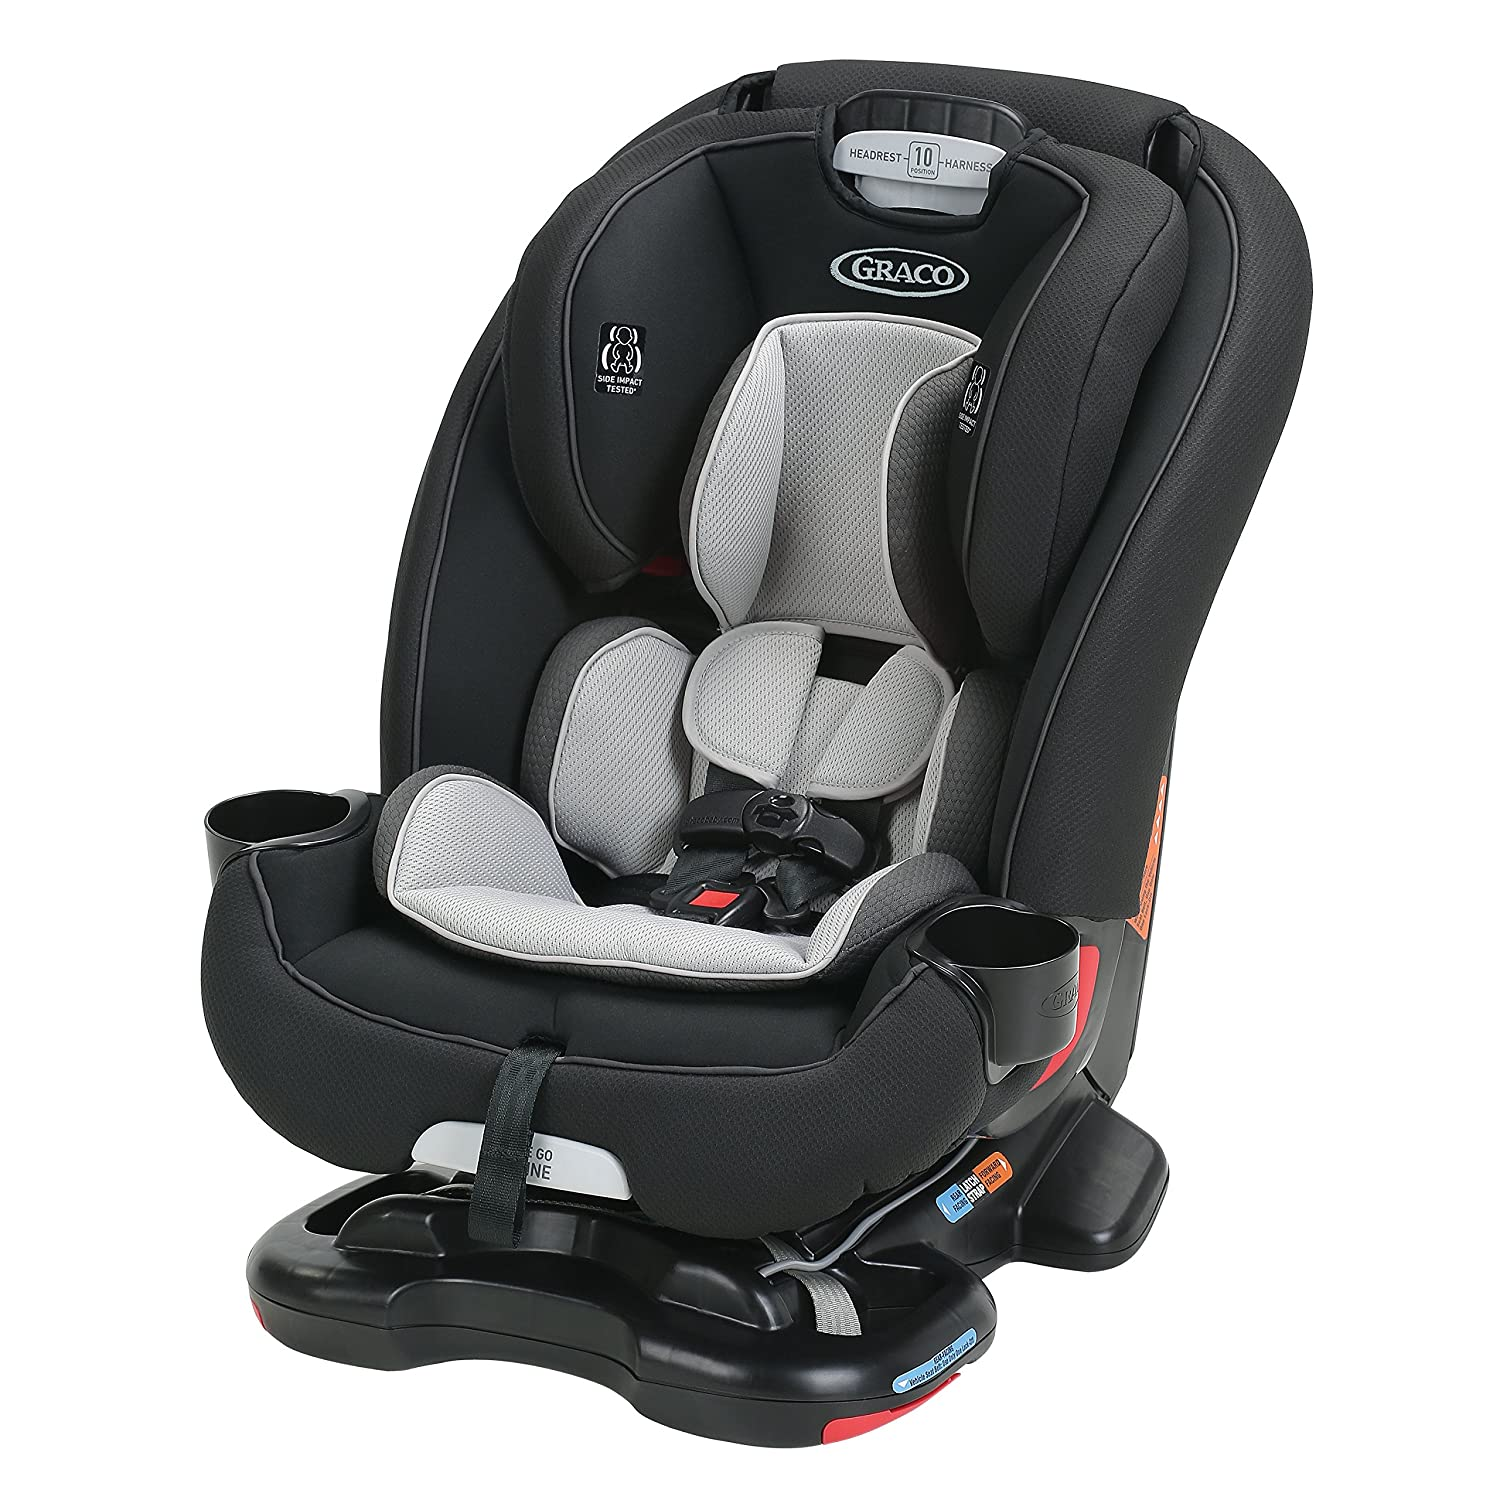 Graco Recline N' Ride 3 in 1 Car Seat | Infant